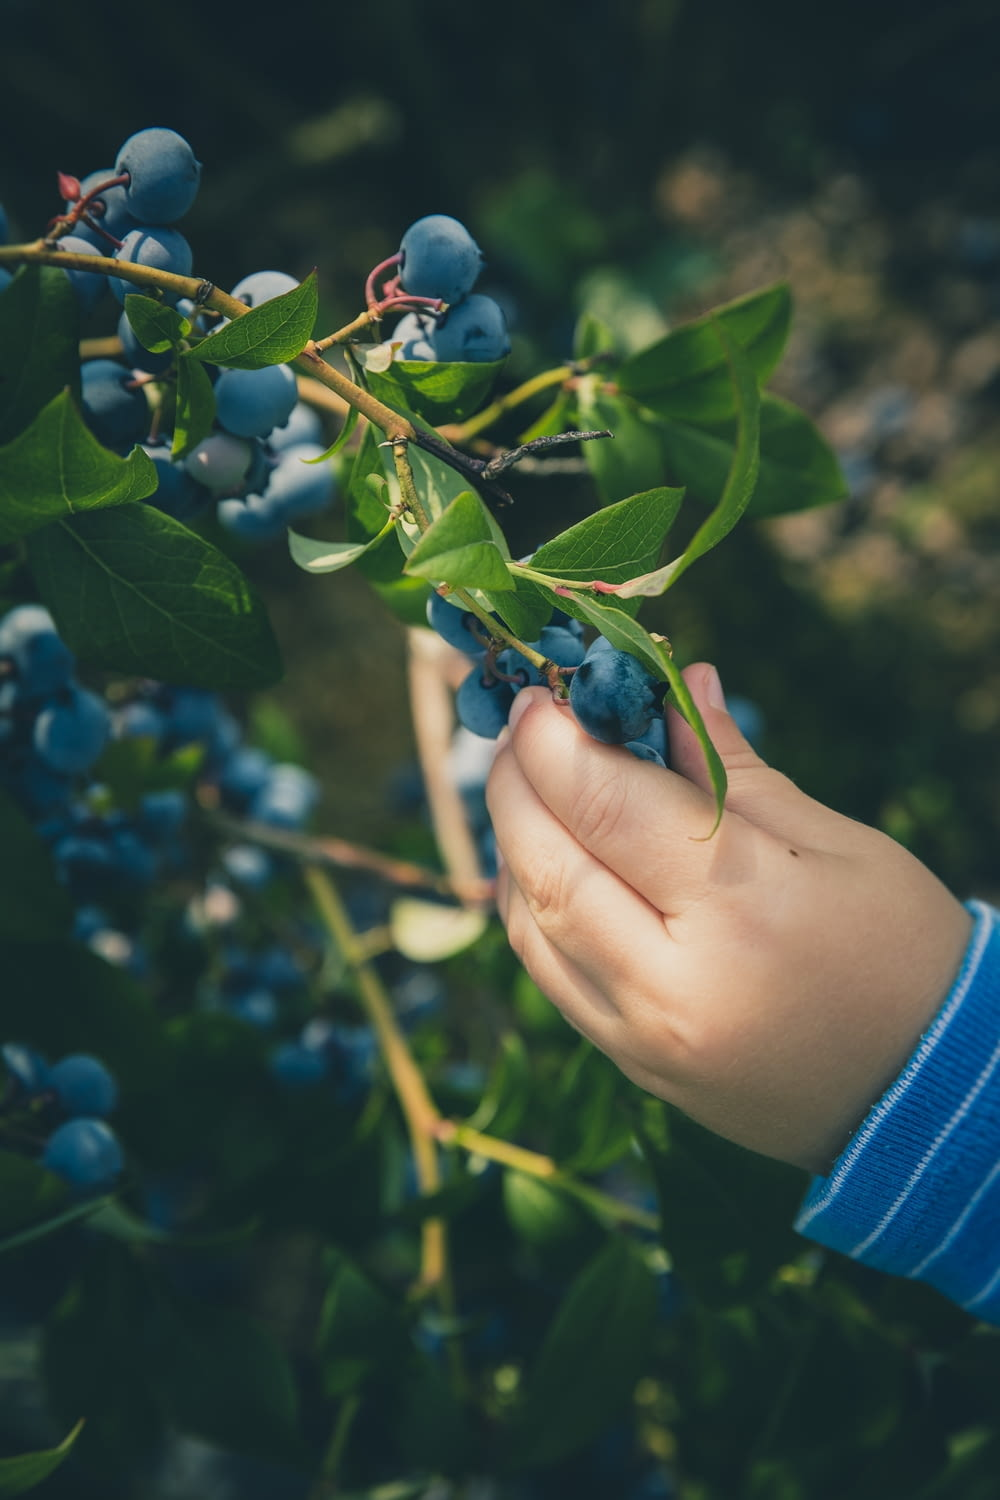 person holding blue berry